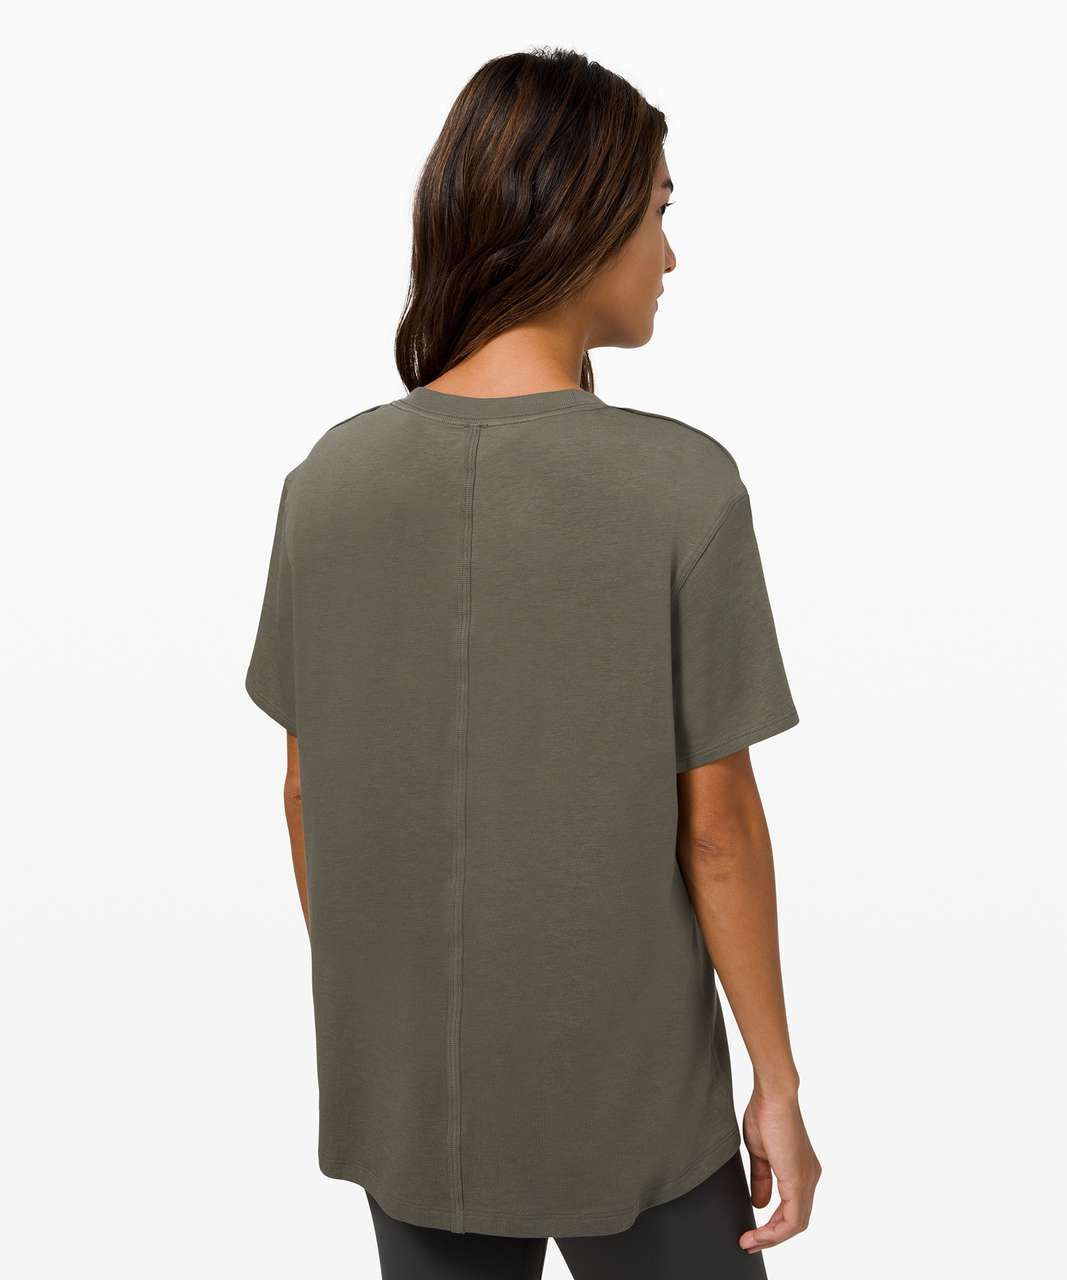 Lululemon All Yours Tee *Graphic - Army Green